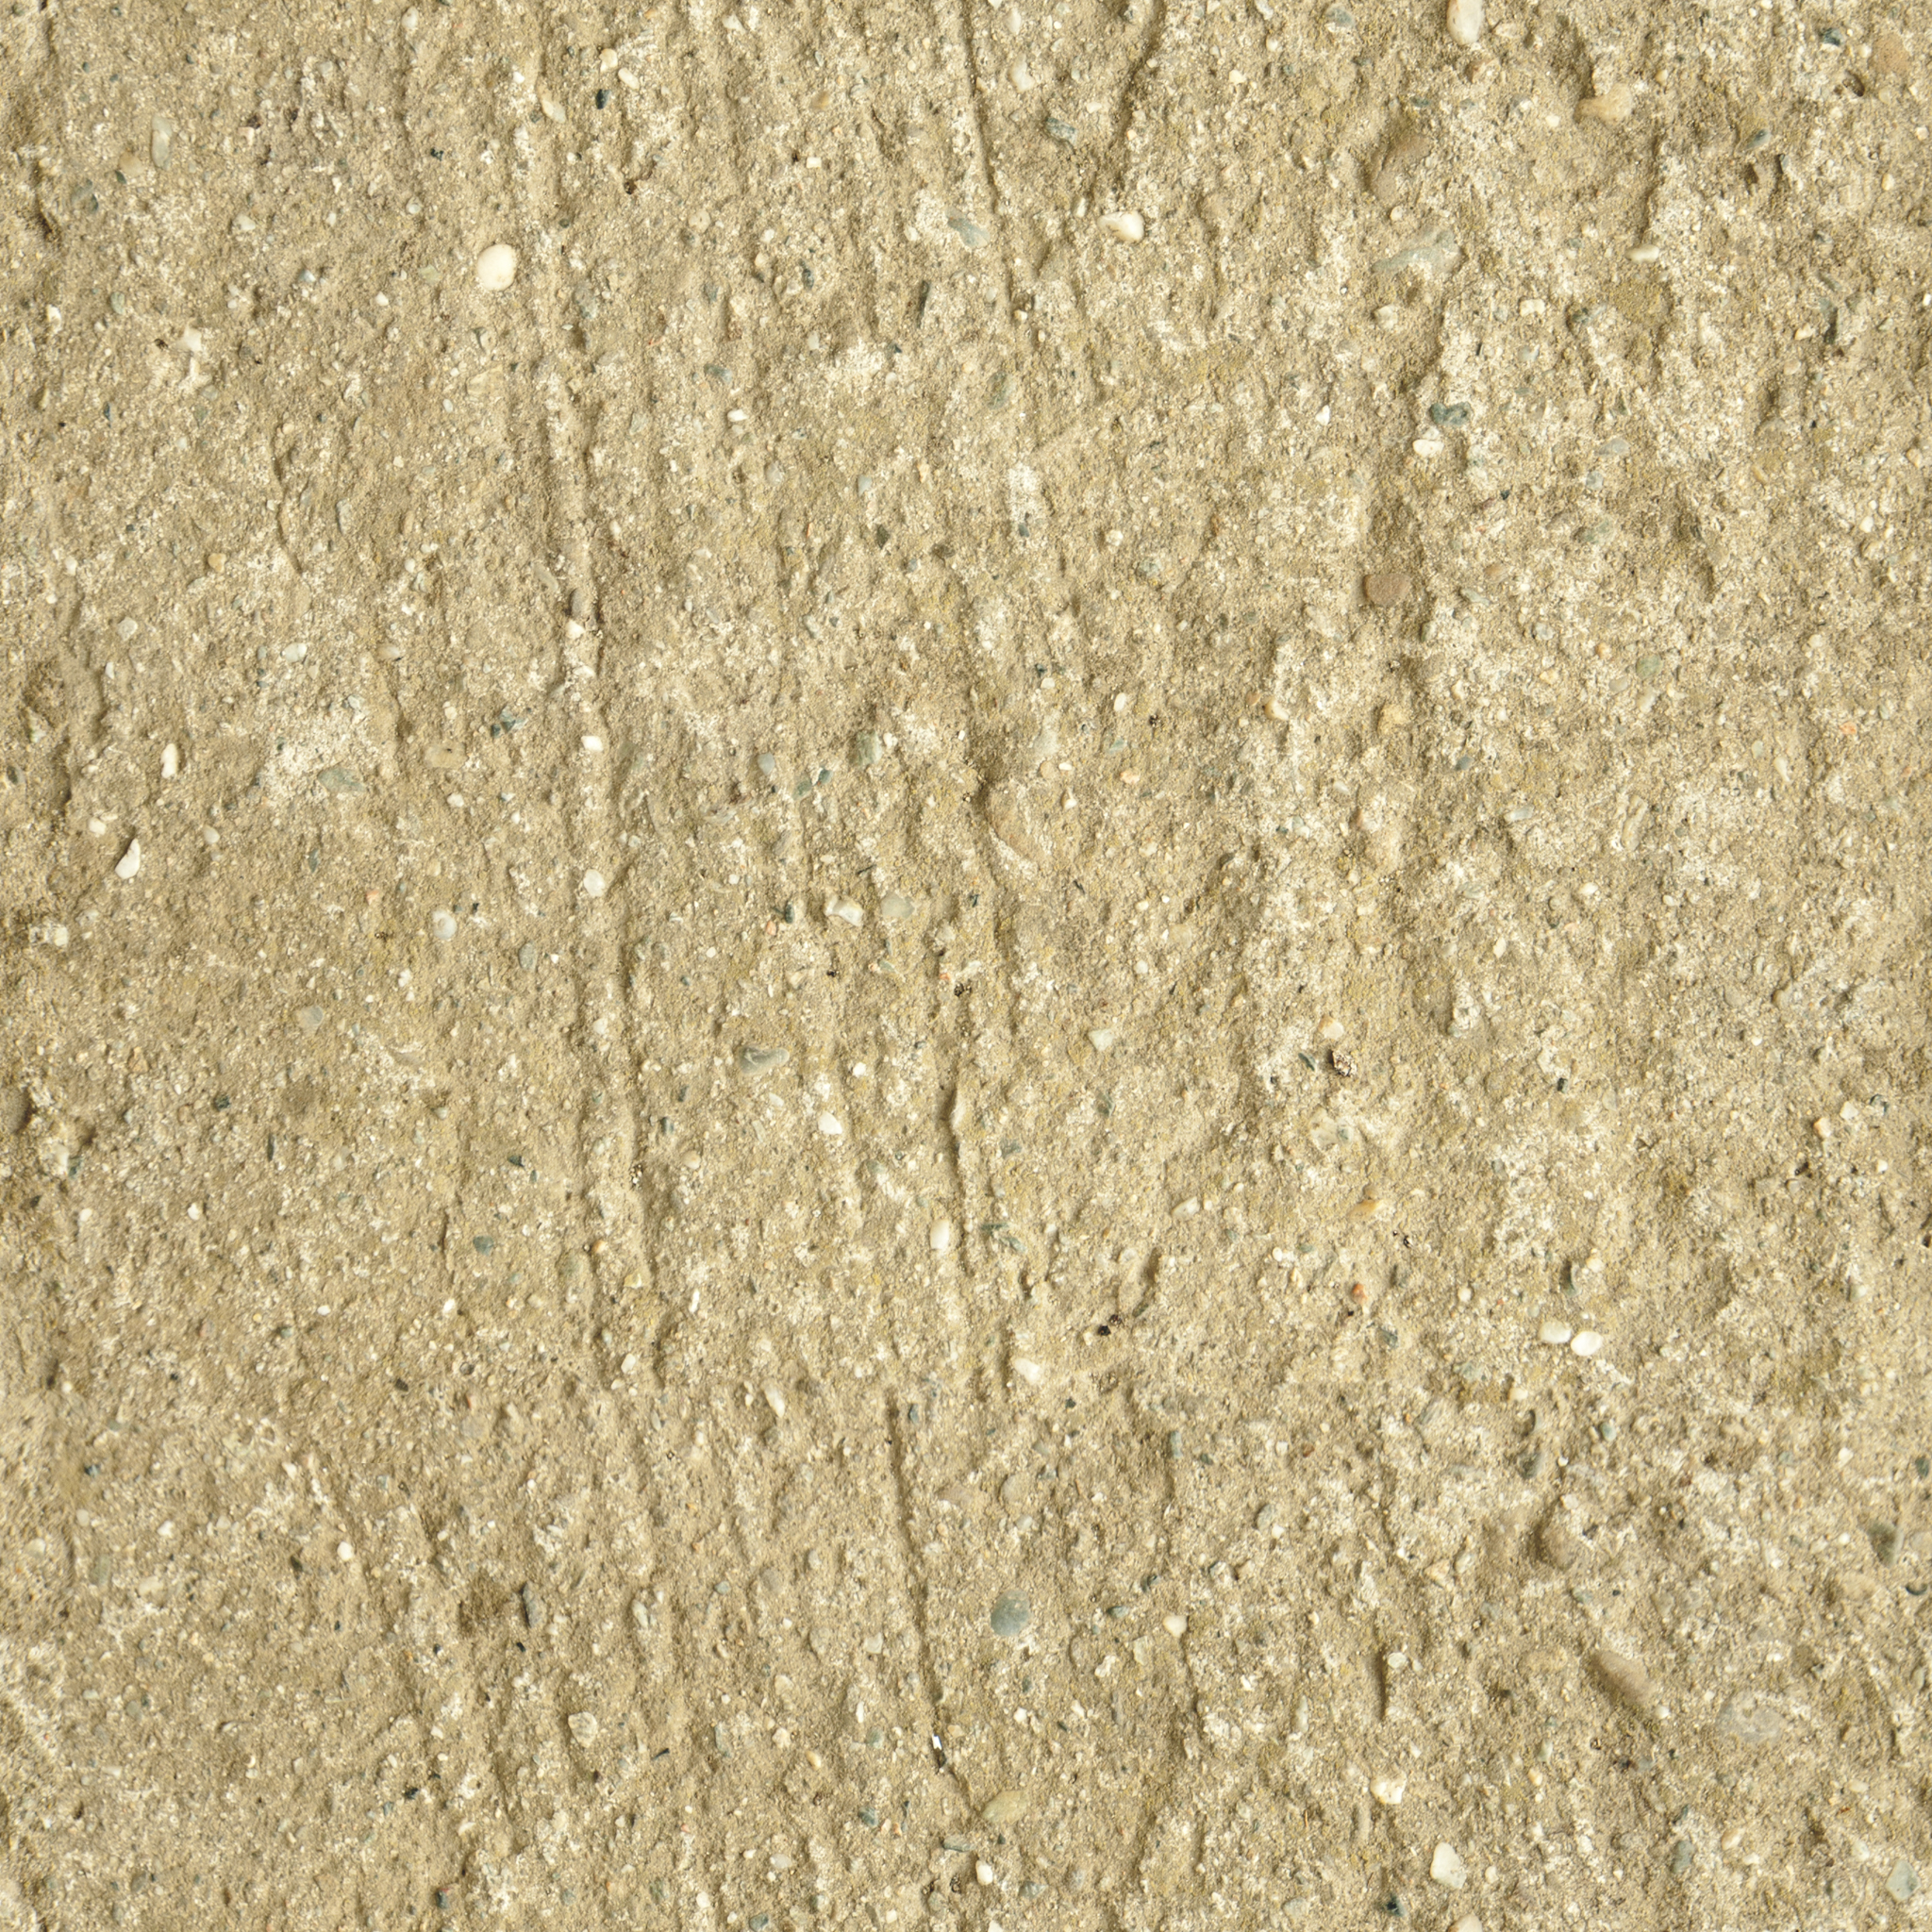 Brown Etched Concrete.jpg